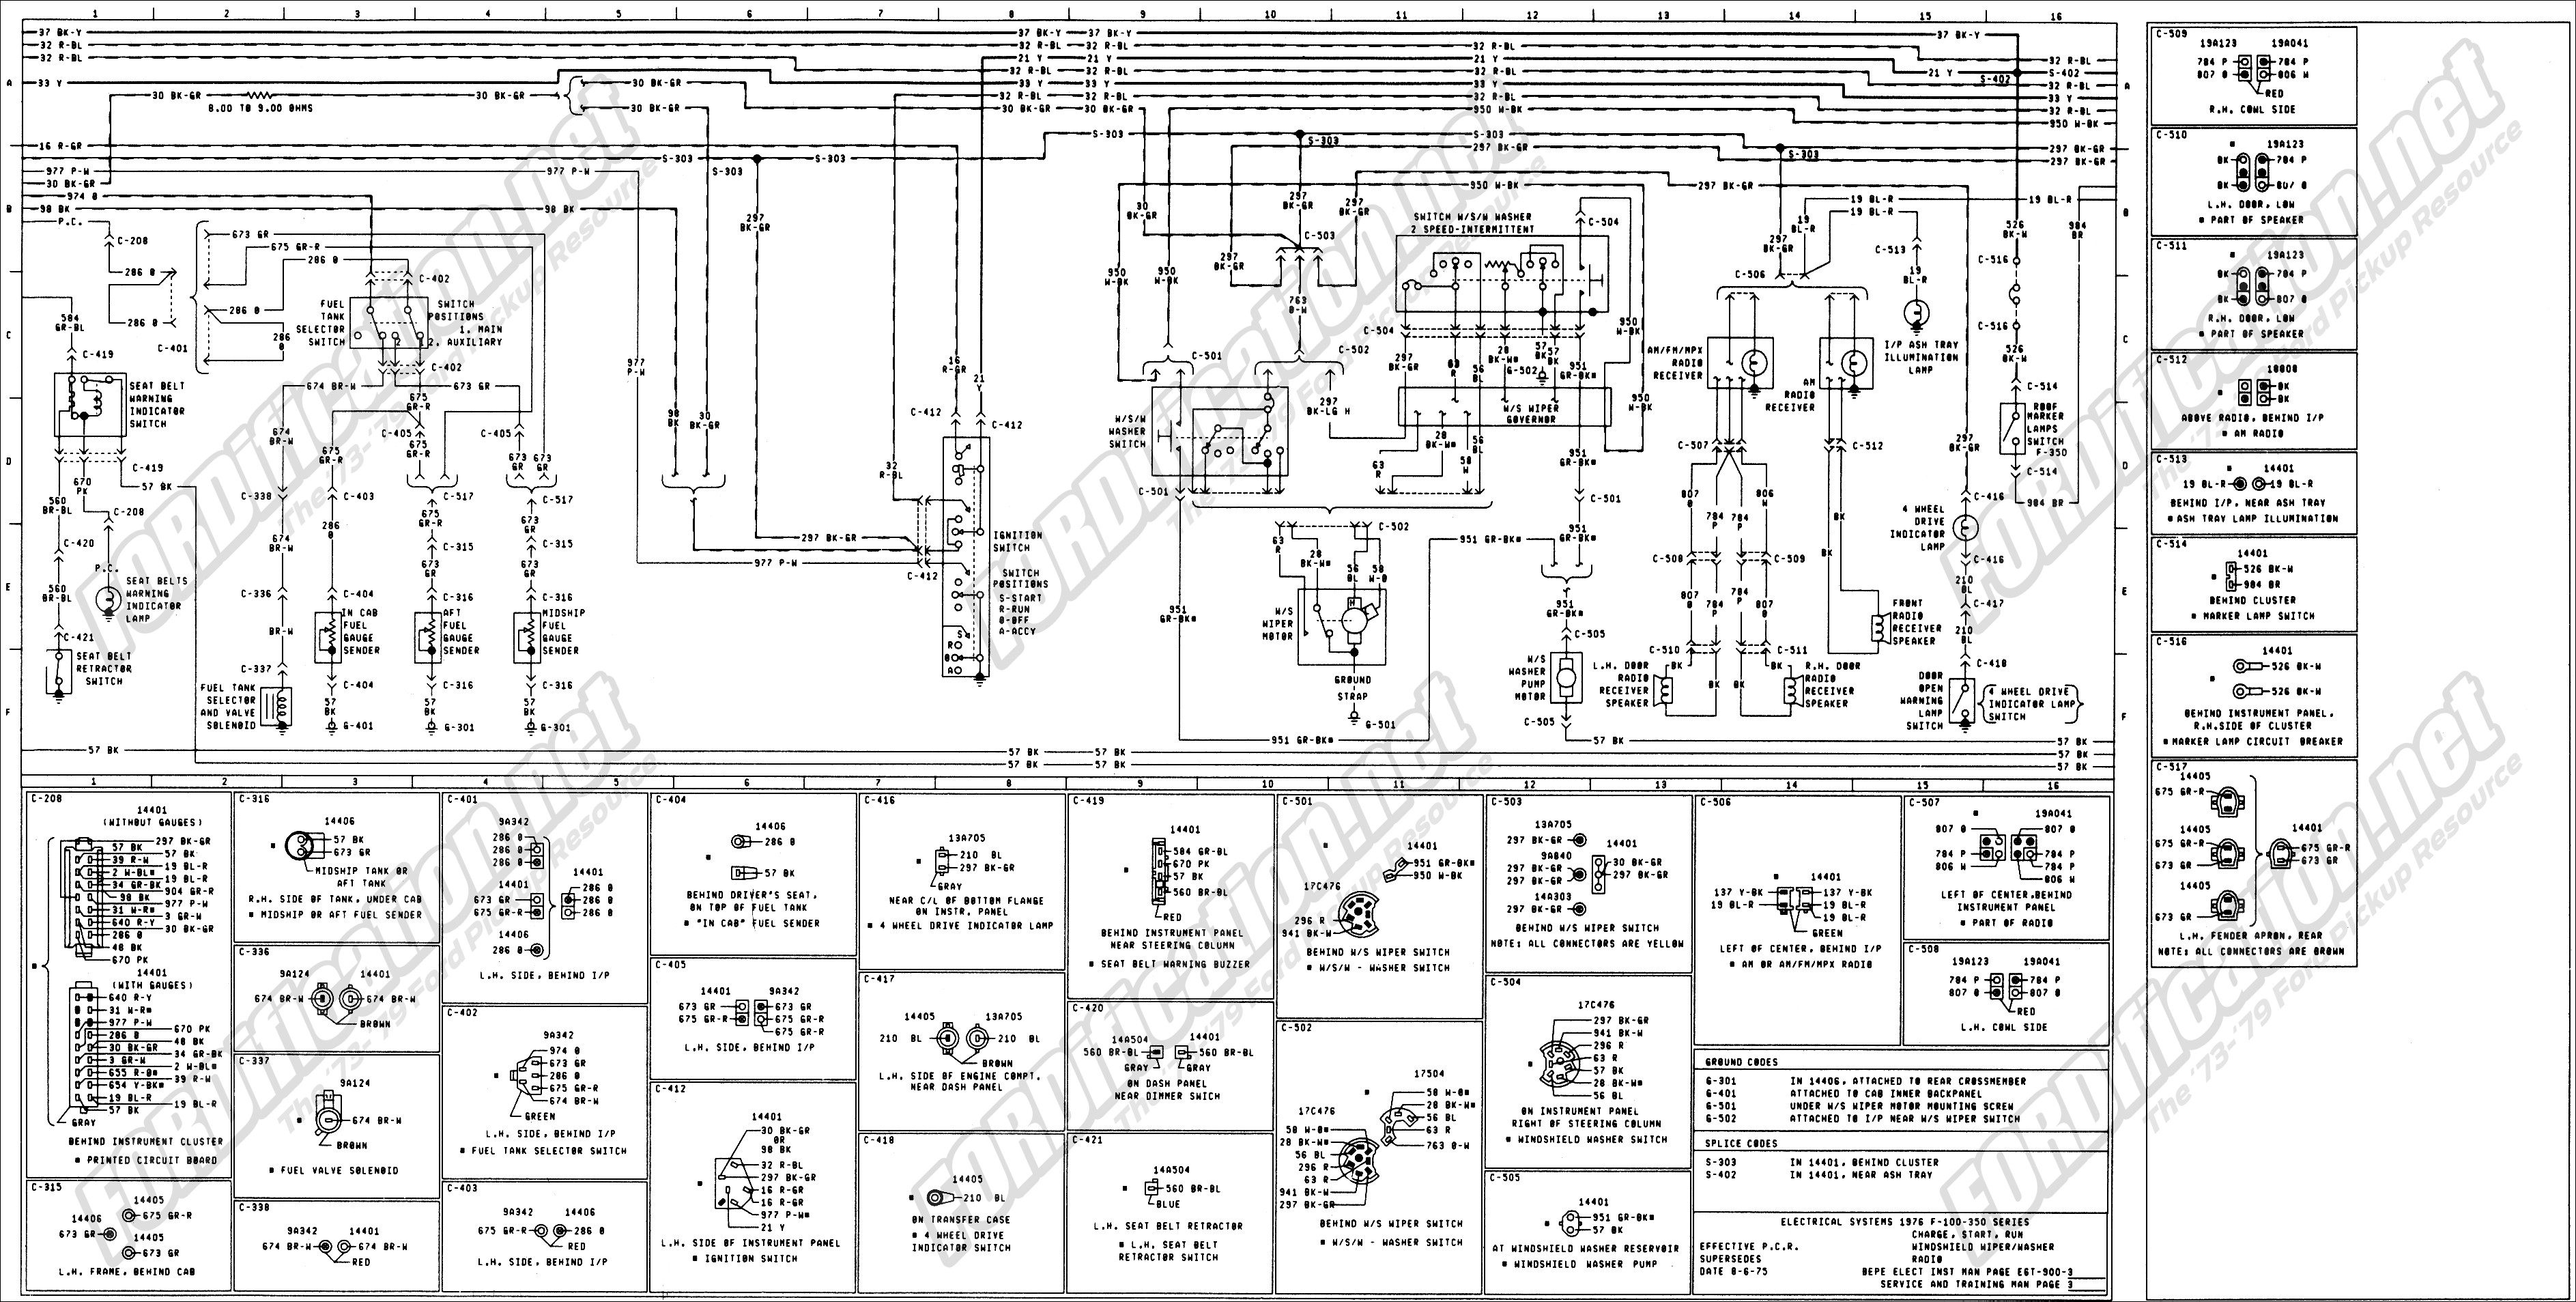 1996 ford Ranger Engine Diagram 1978 F100 ford Ranger Wiring Another Blog About Wiring Diagram • Of 1996 ford Ranger Engine Diagram 1978 F100 ford Ranger Wiring Another Blog About Wiring Diagram •